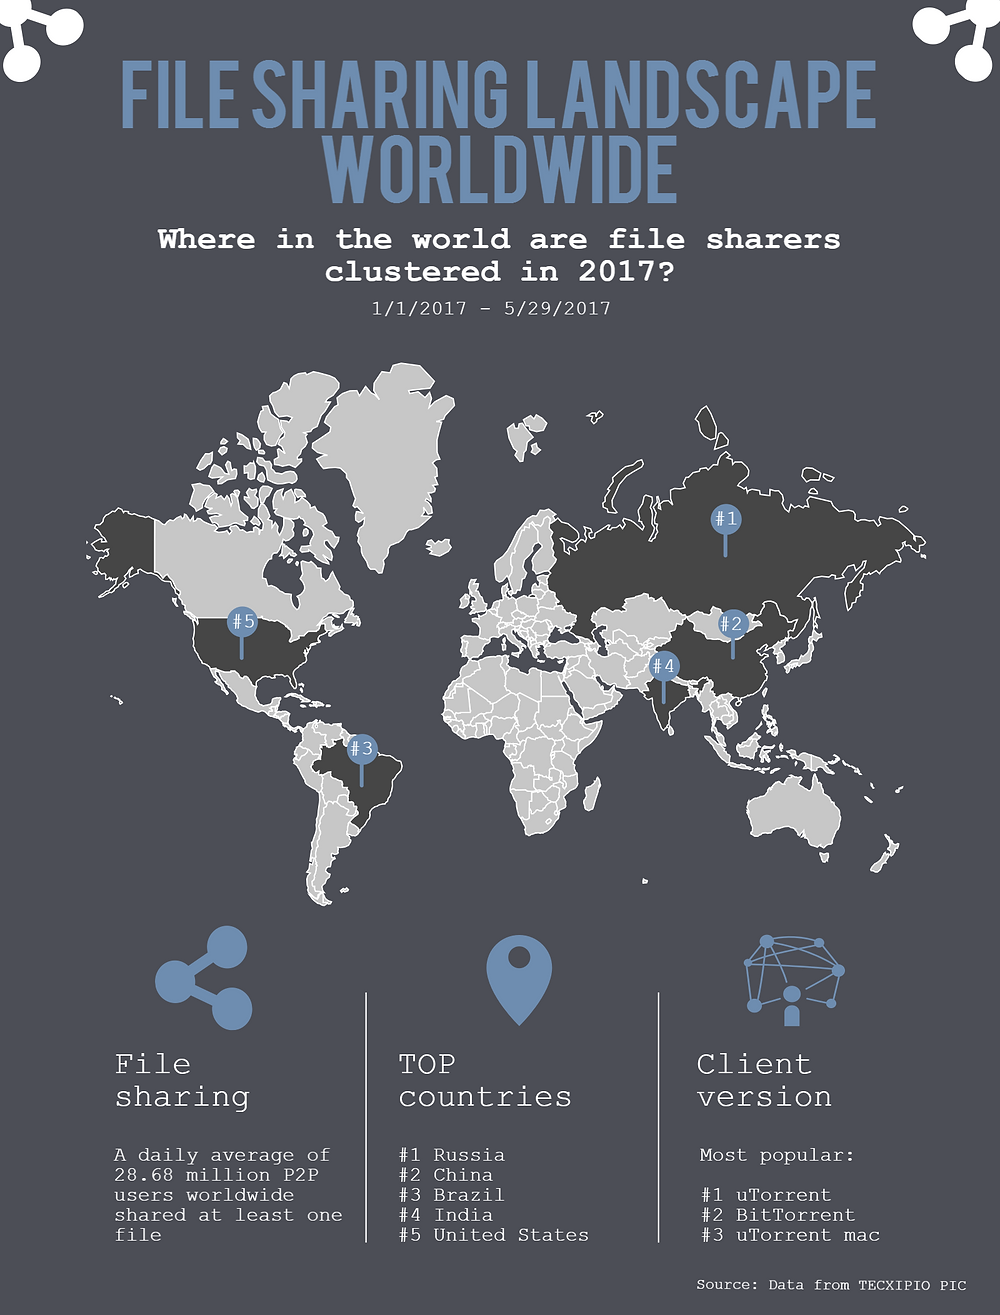 TECXIPIO infographic. File sharing landsape displyed on a worldmap. The top file sharing countries are marked. It also shows the top 5 torrent clients